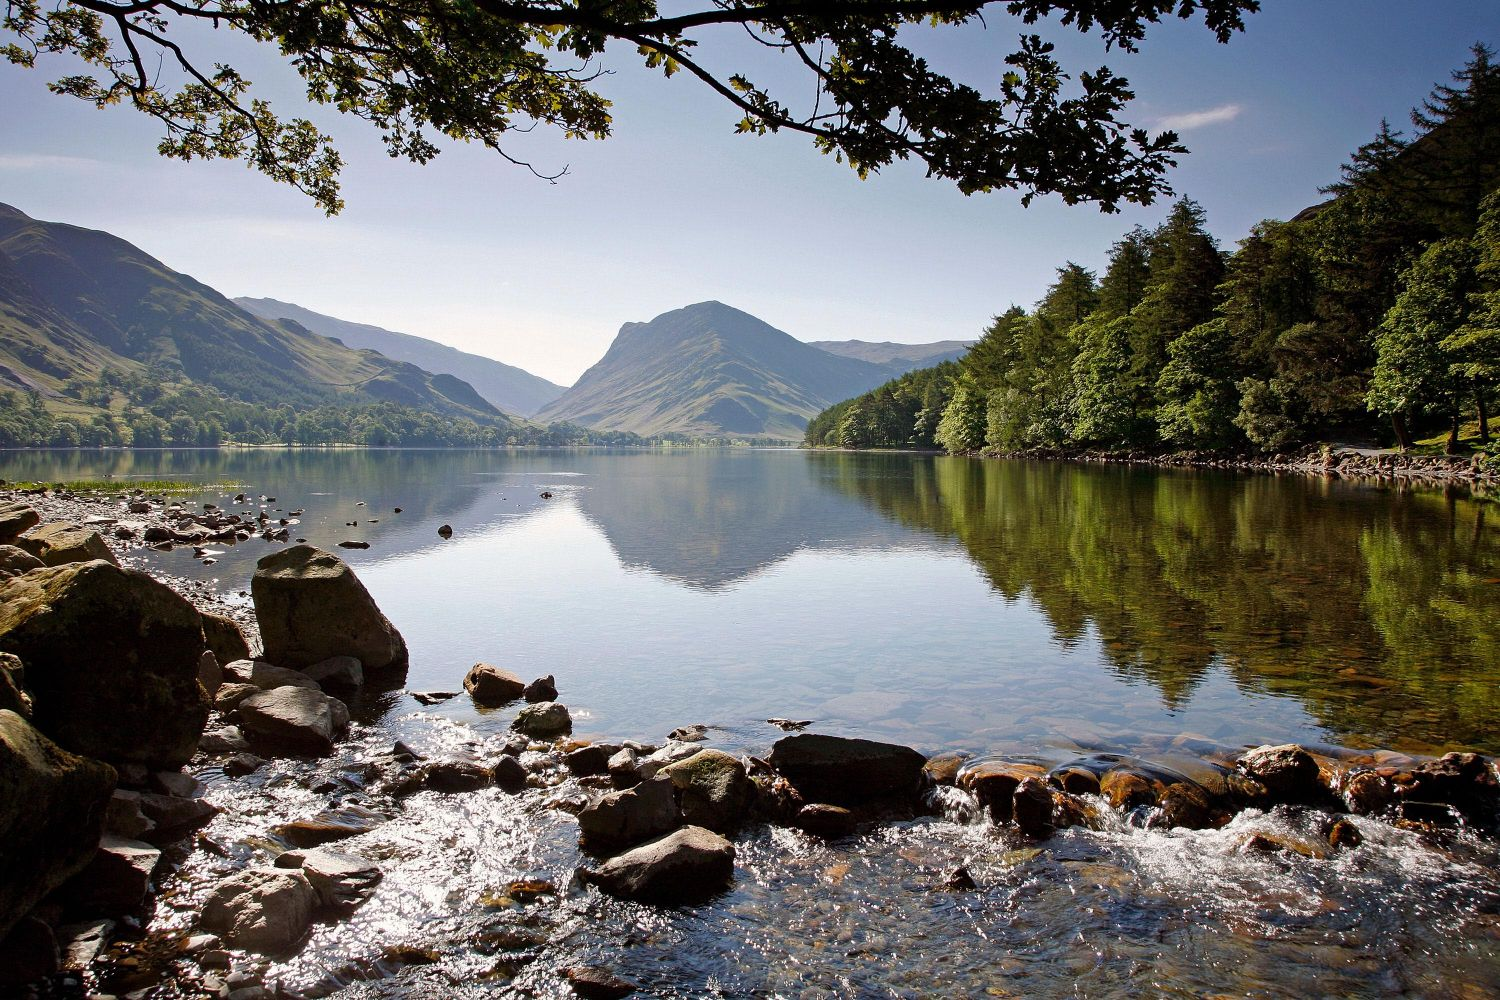 A view of Fleetwith Pike and Buttermere